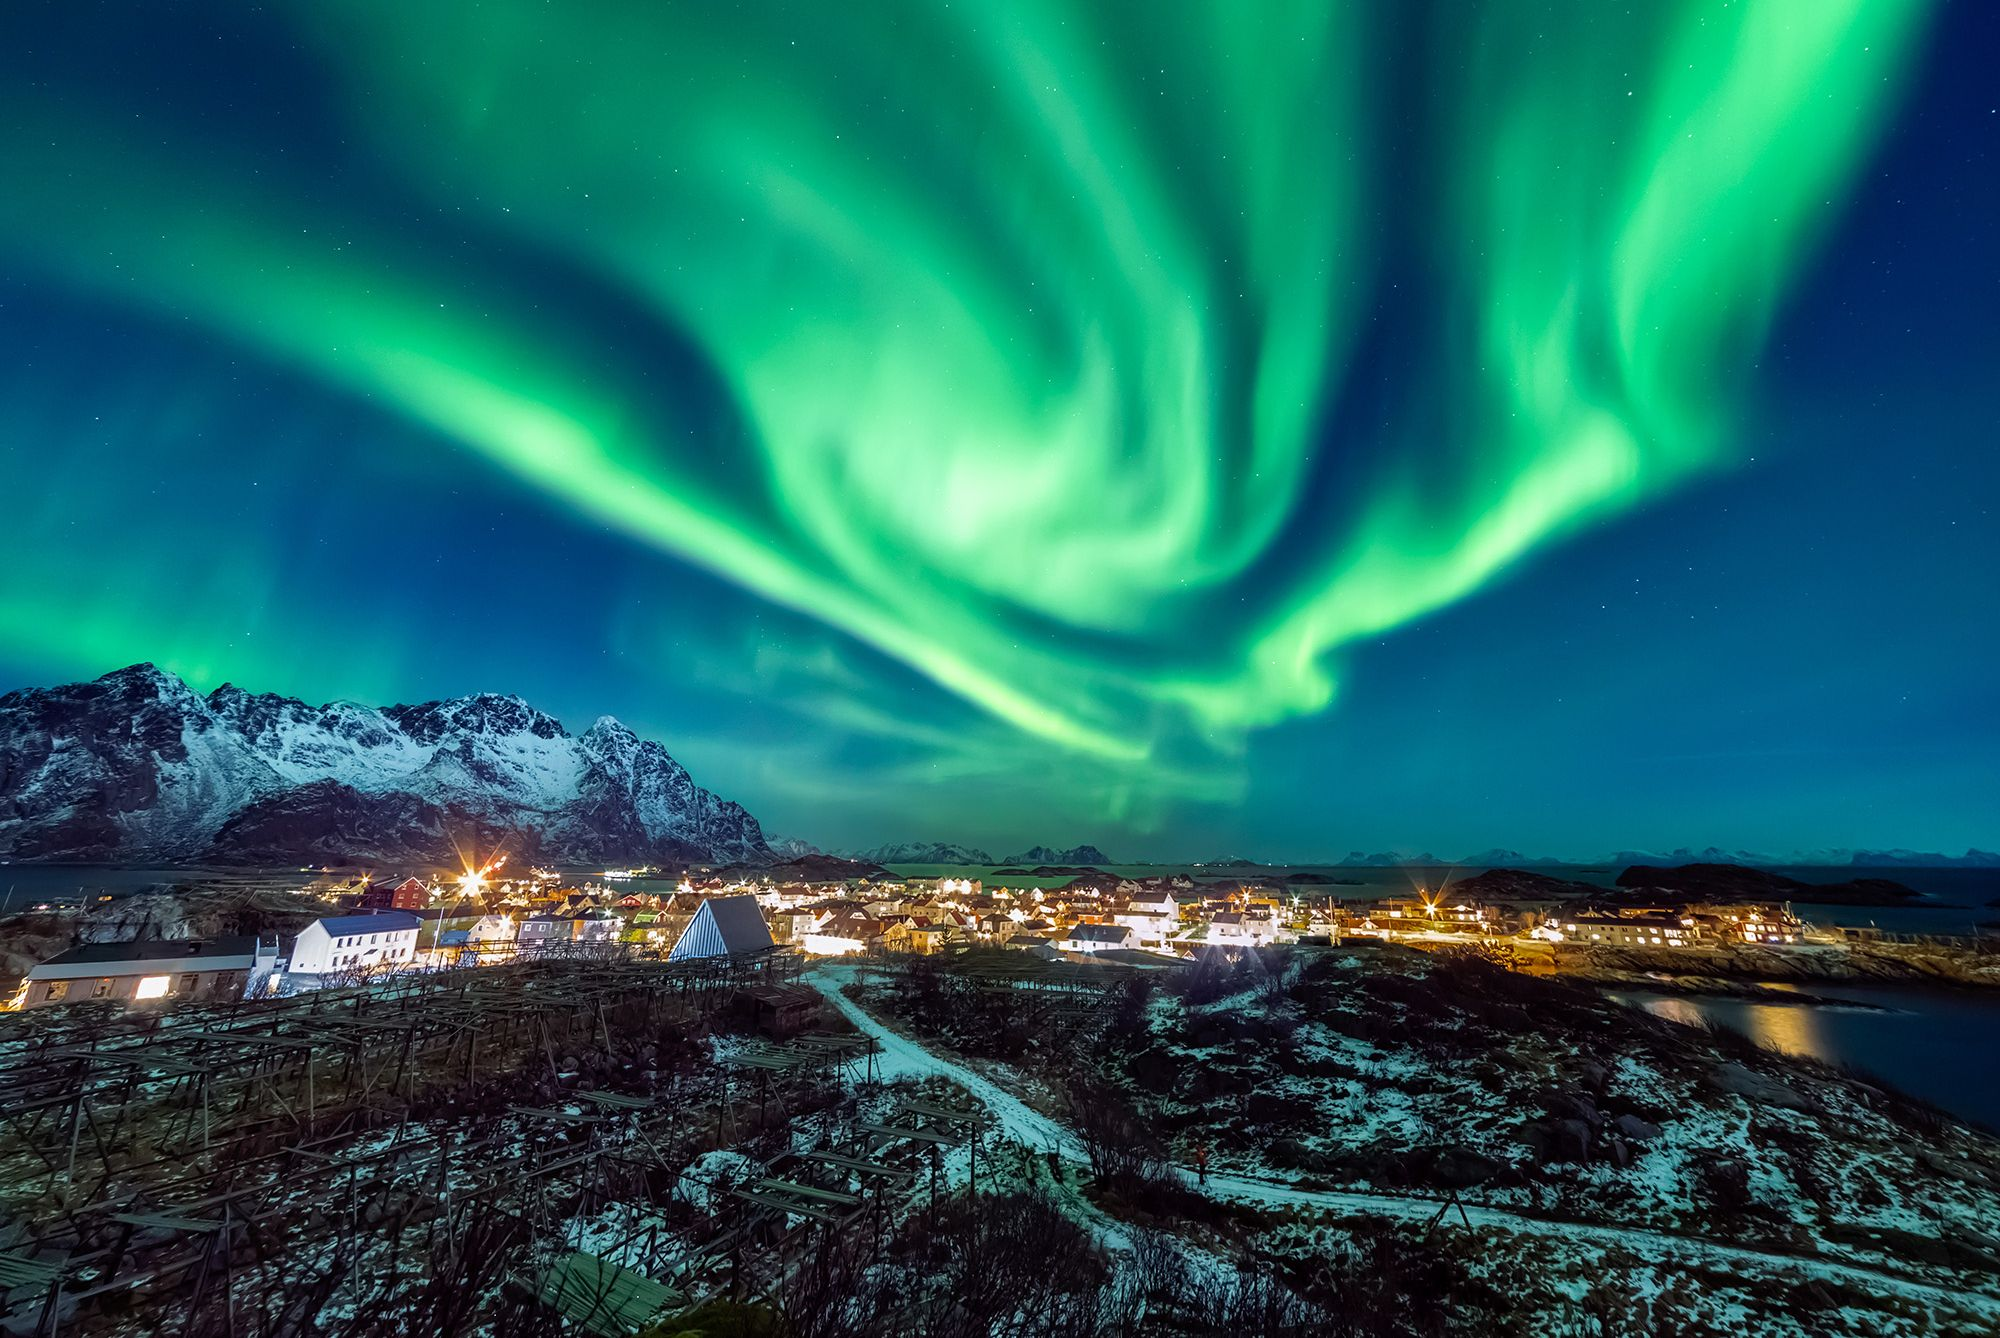 What are the Northern Lights and where can I see them?